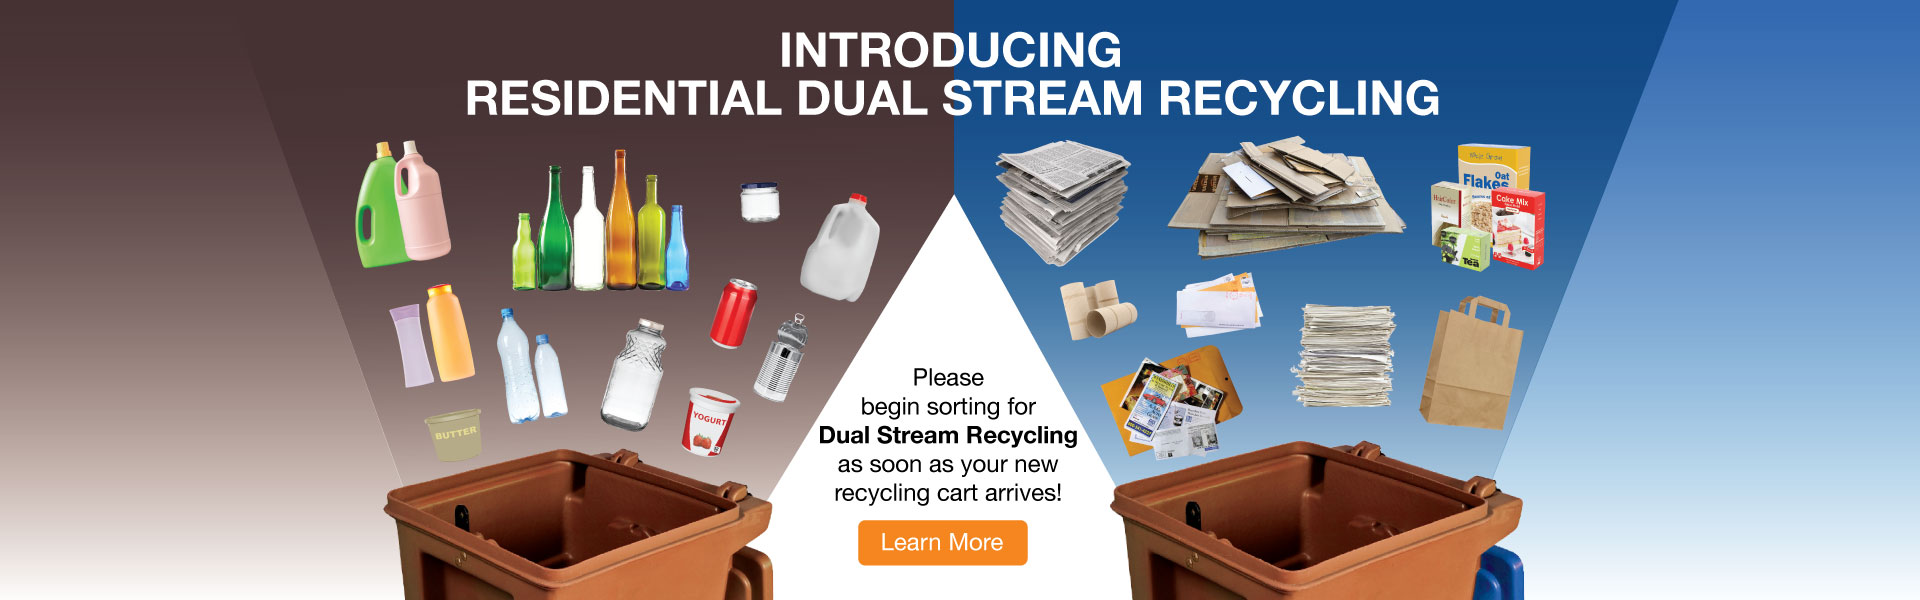 Introducing Residential Dual Stream Recycling